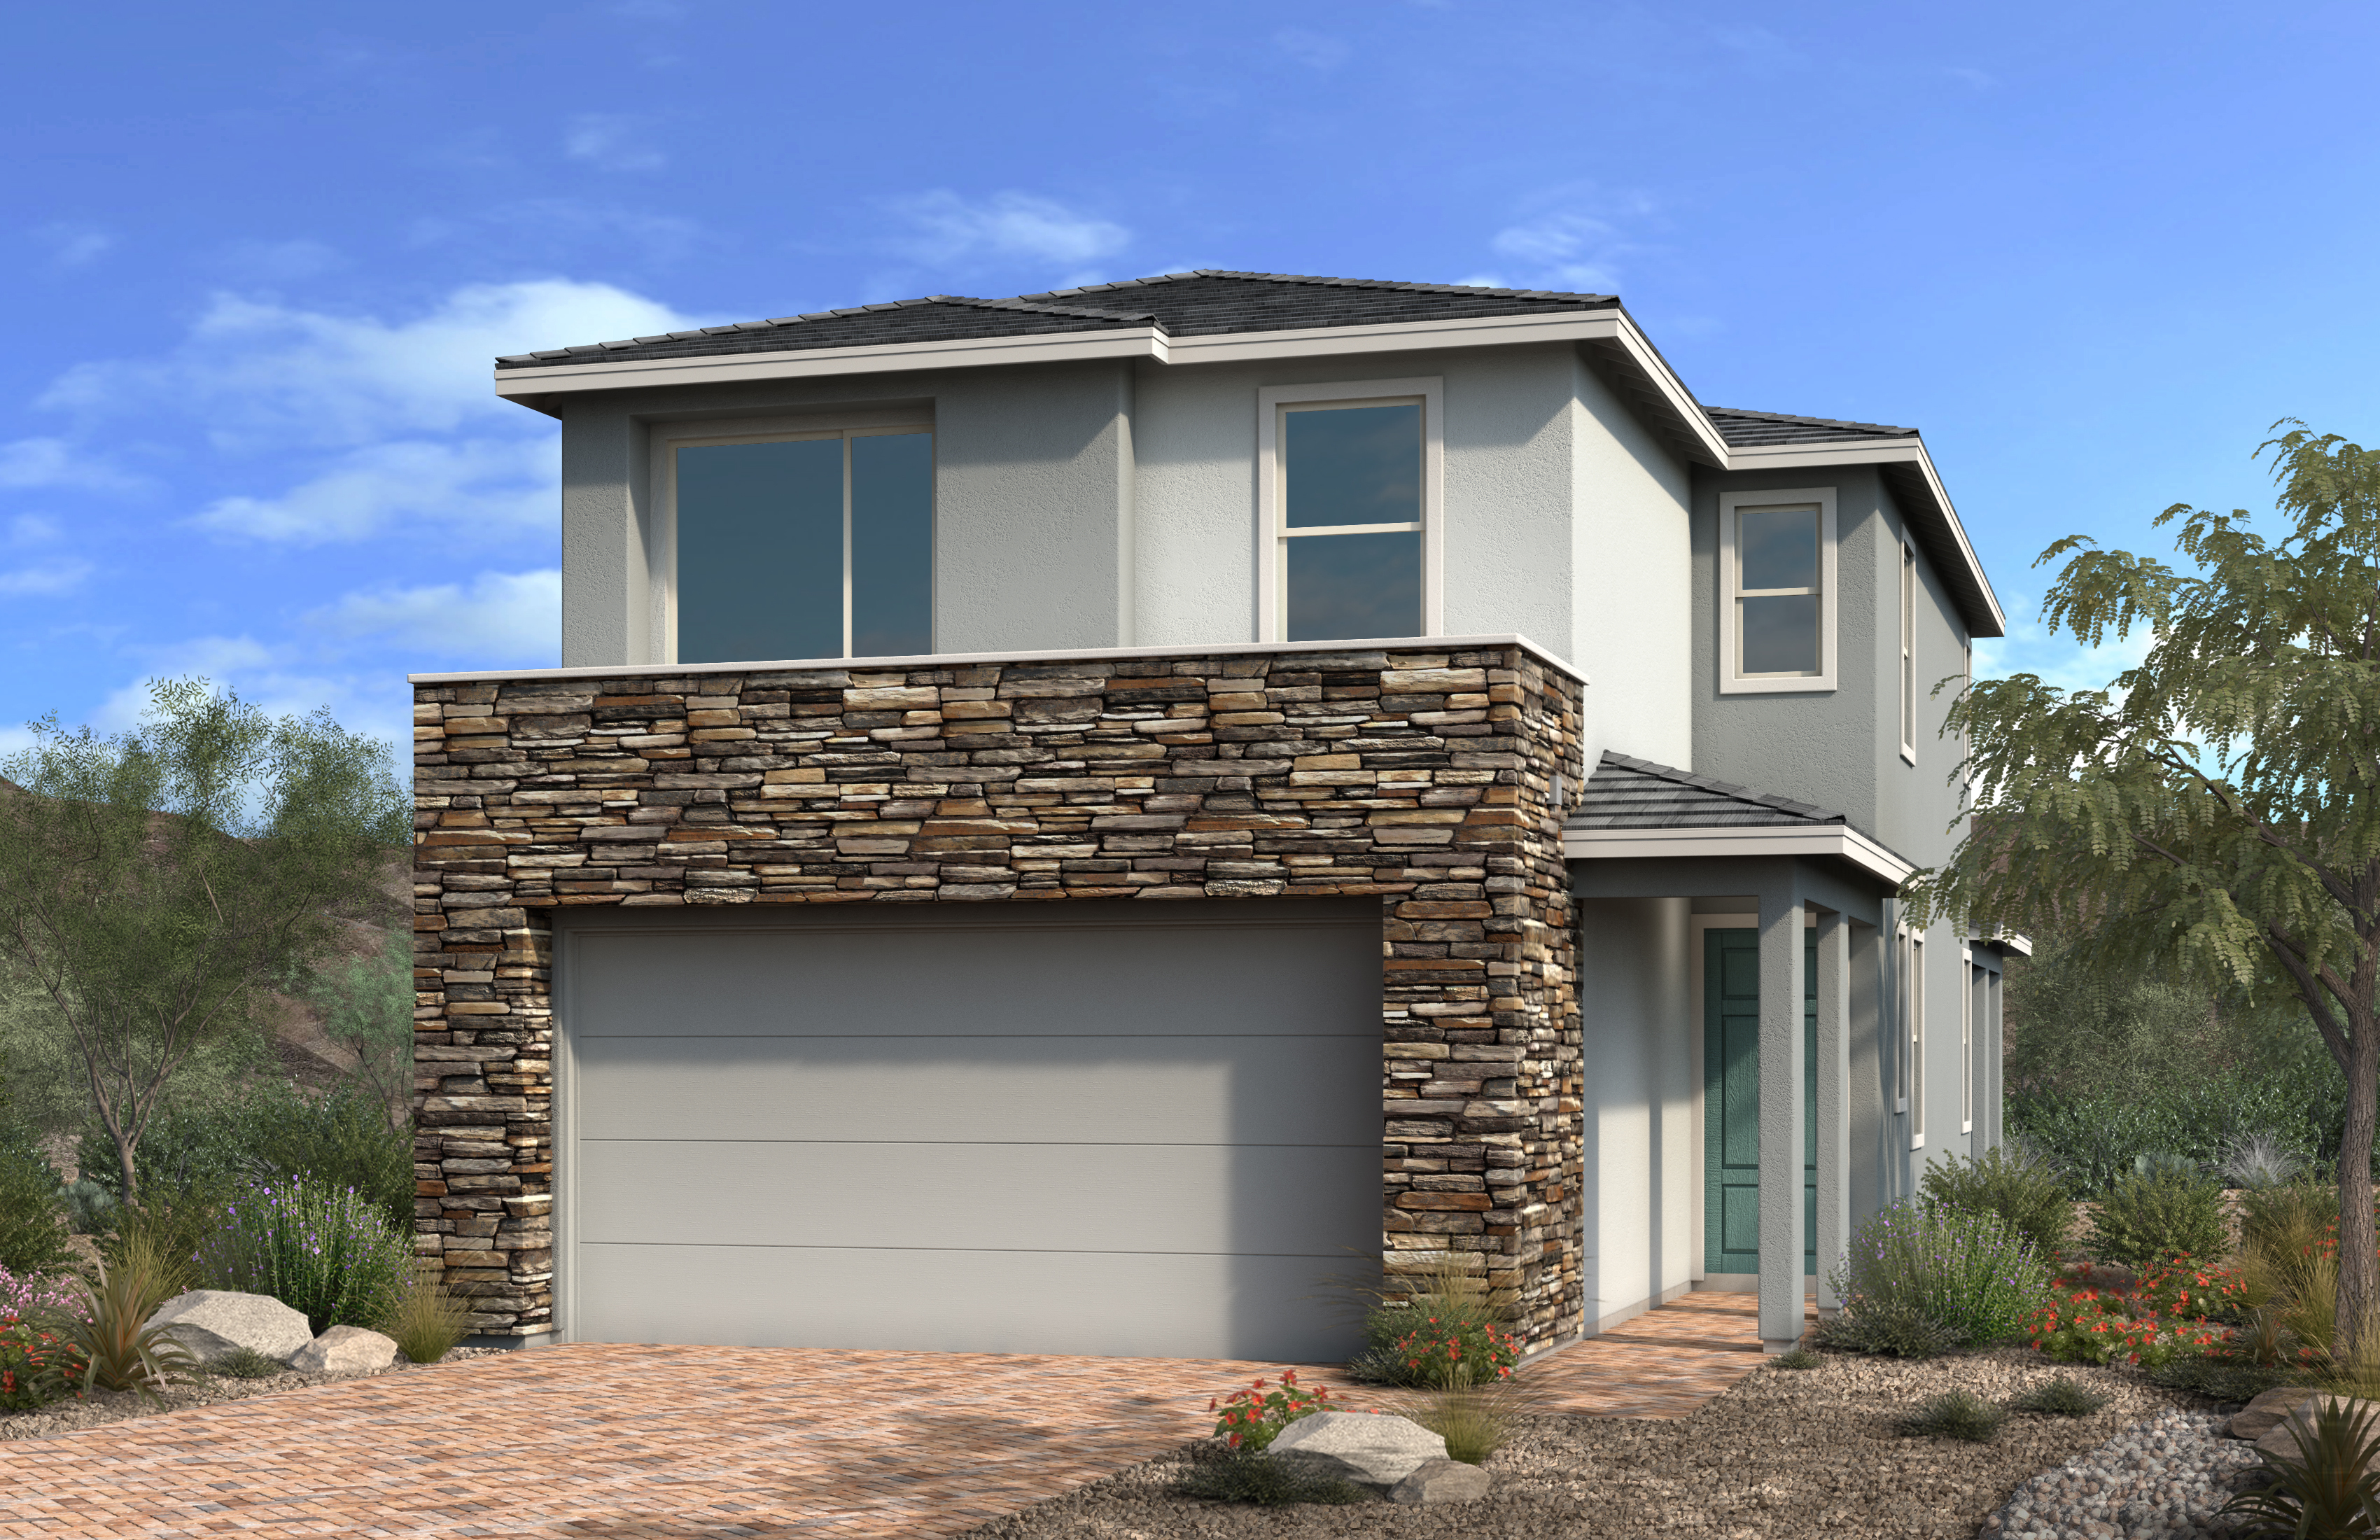 Kb Home Announces The Grand Opening Of Two New Communities In